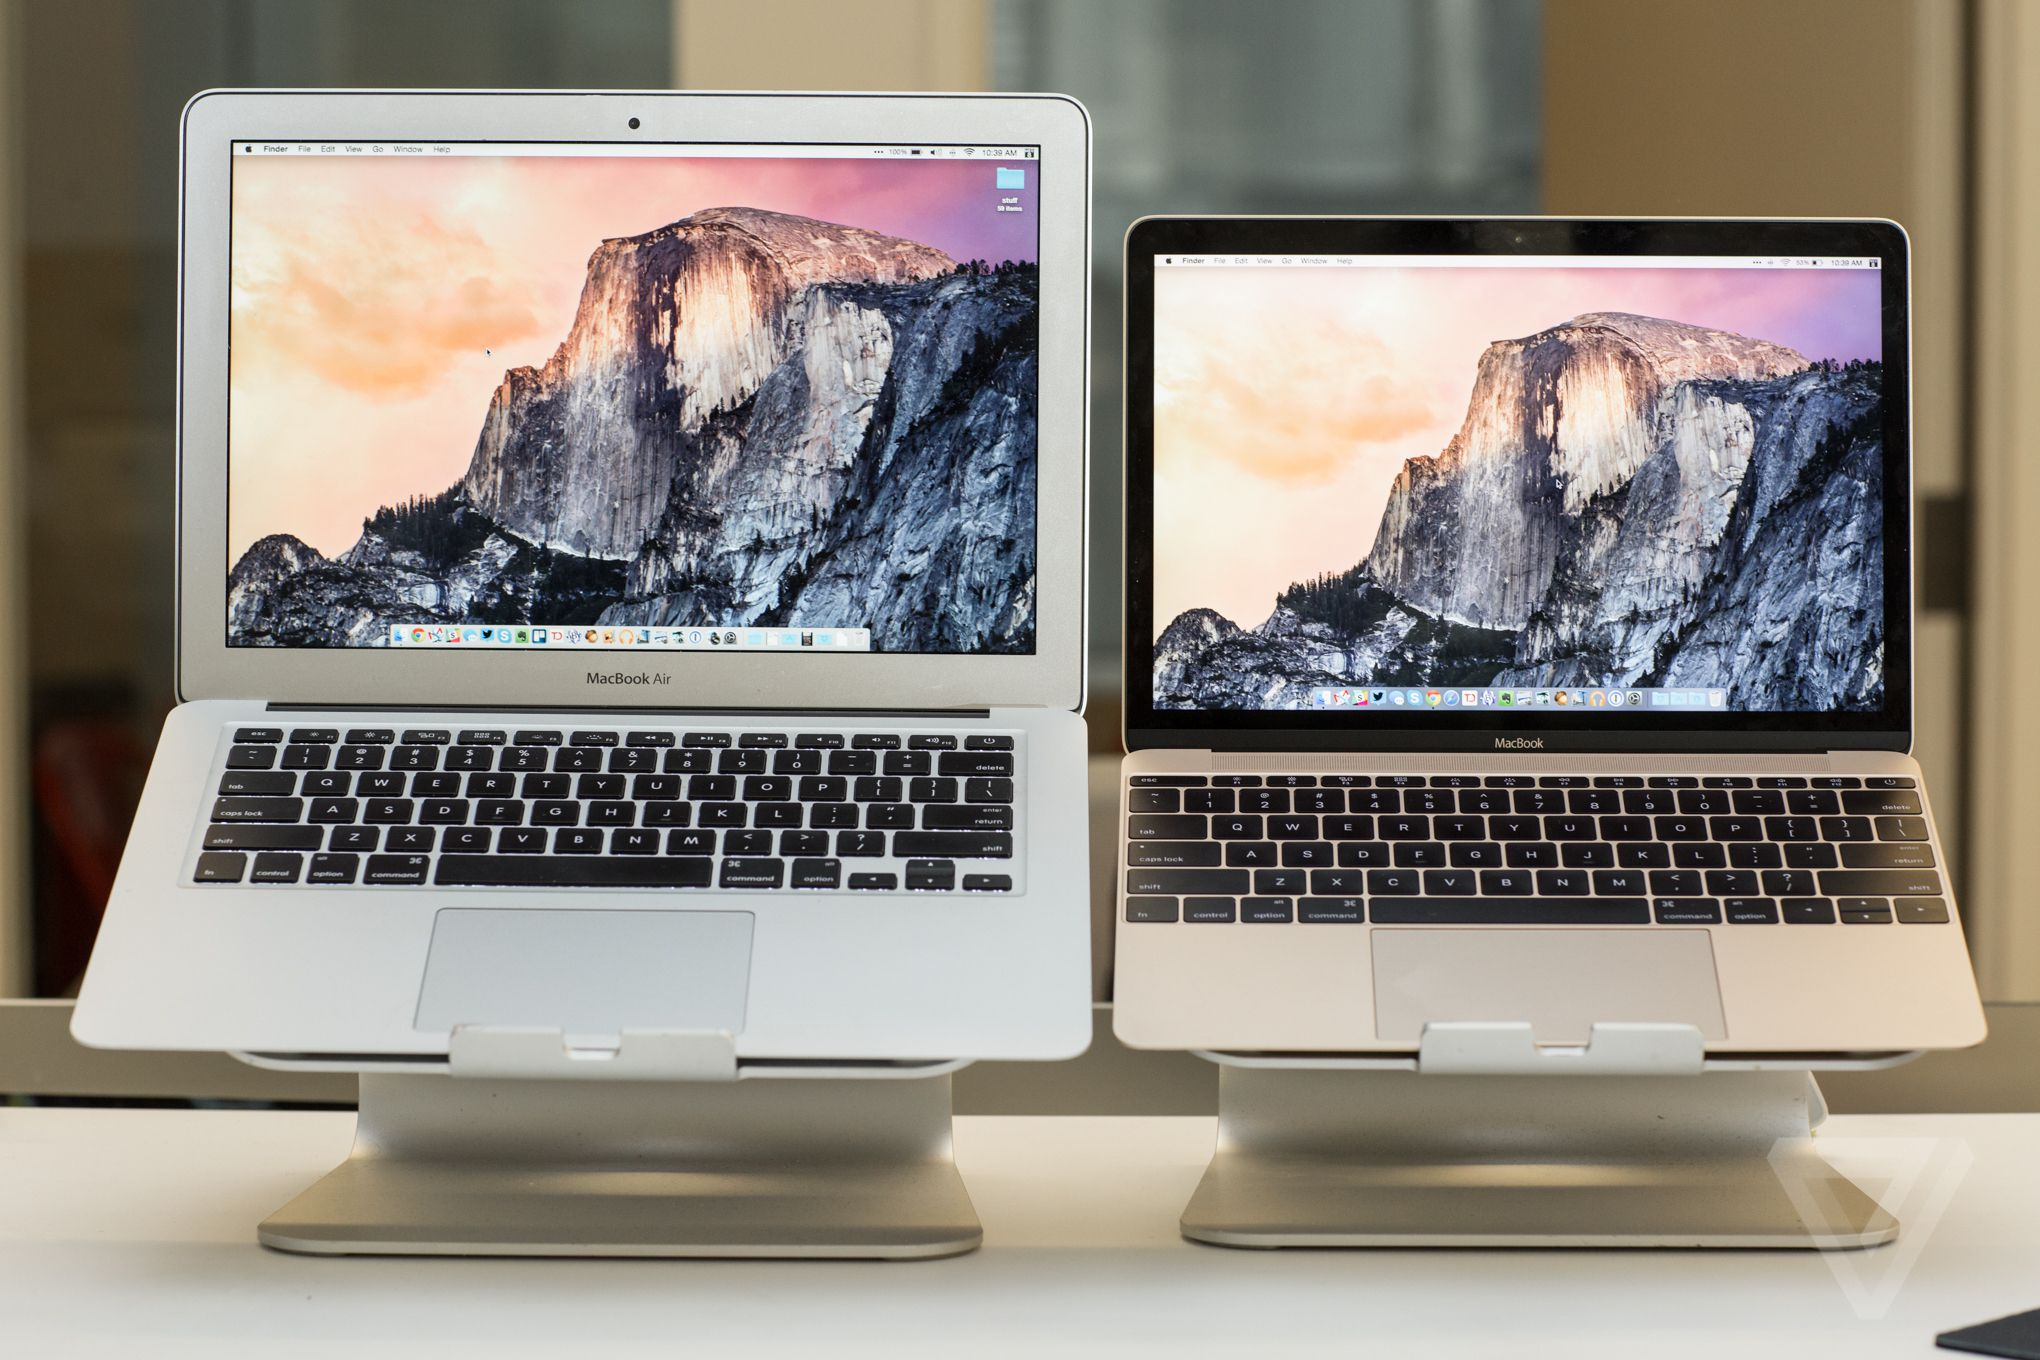 I am looking into buying a macbook, but I have some questions?